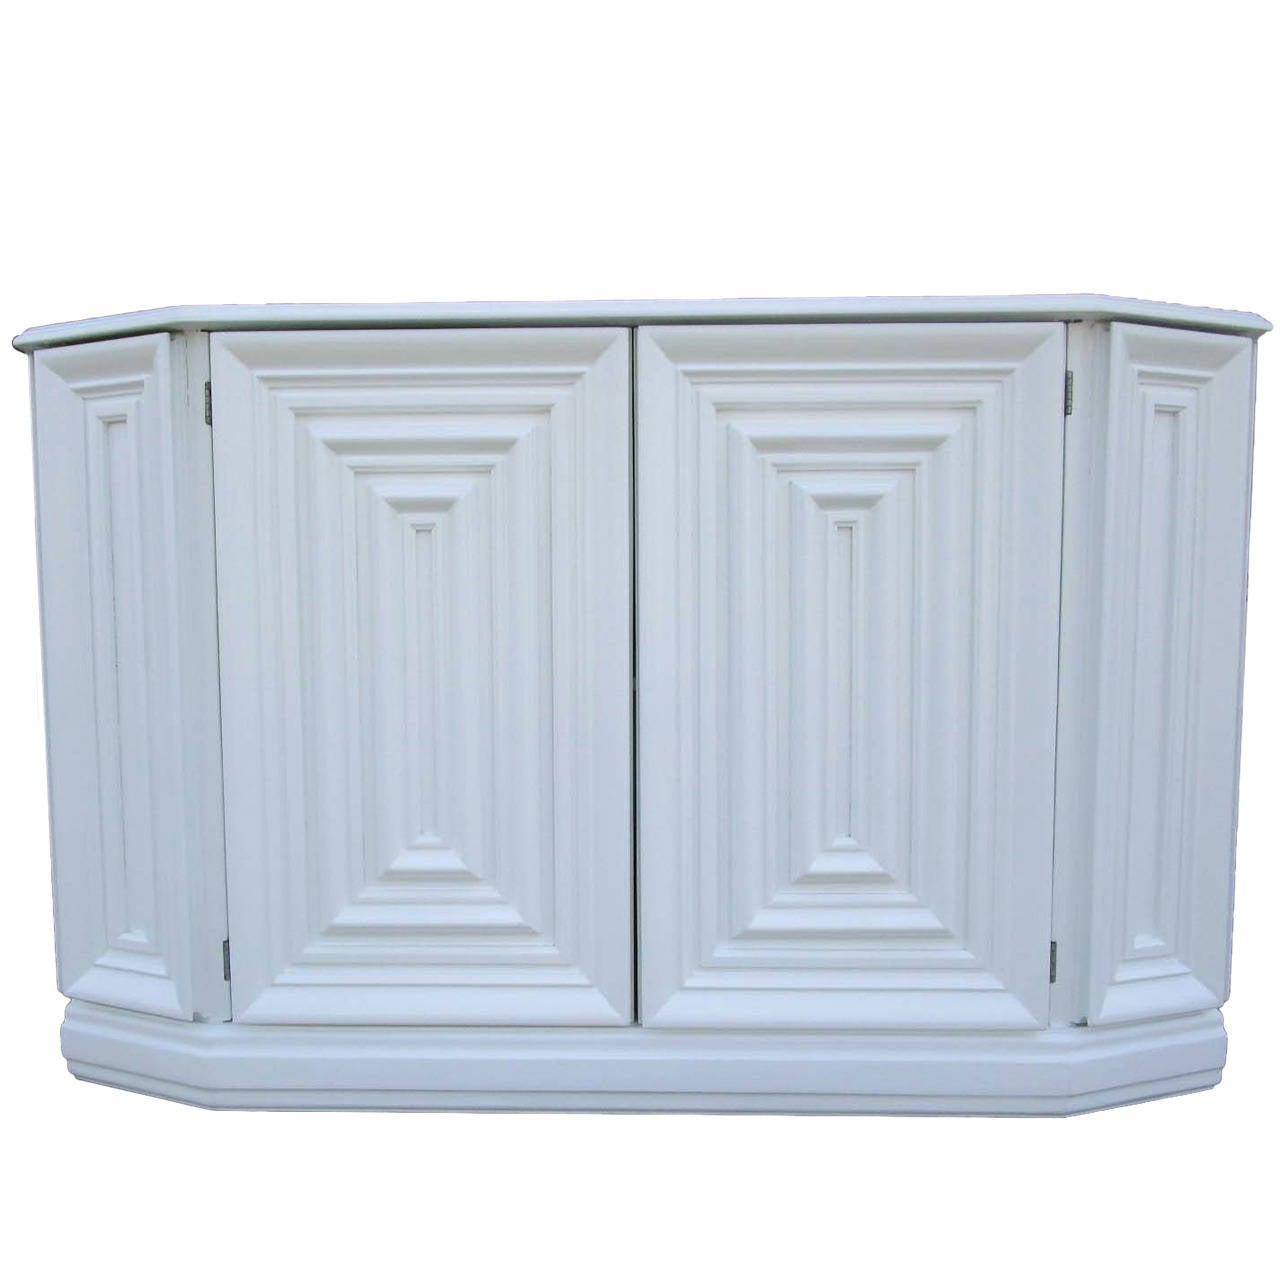 Elegant Console Cabinet In White Lacquer Finish For